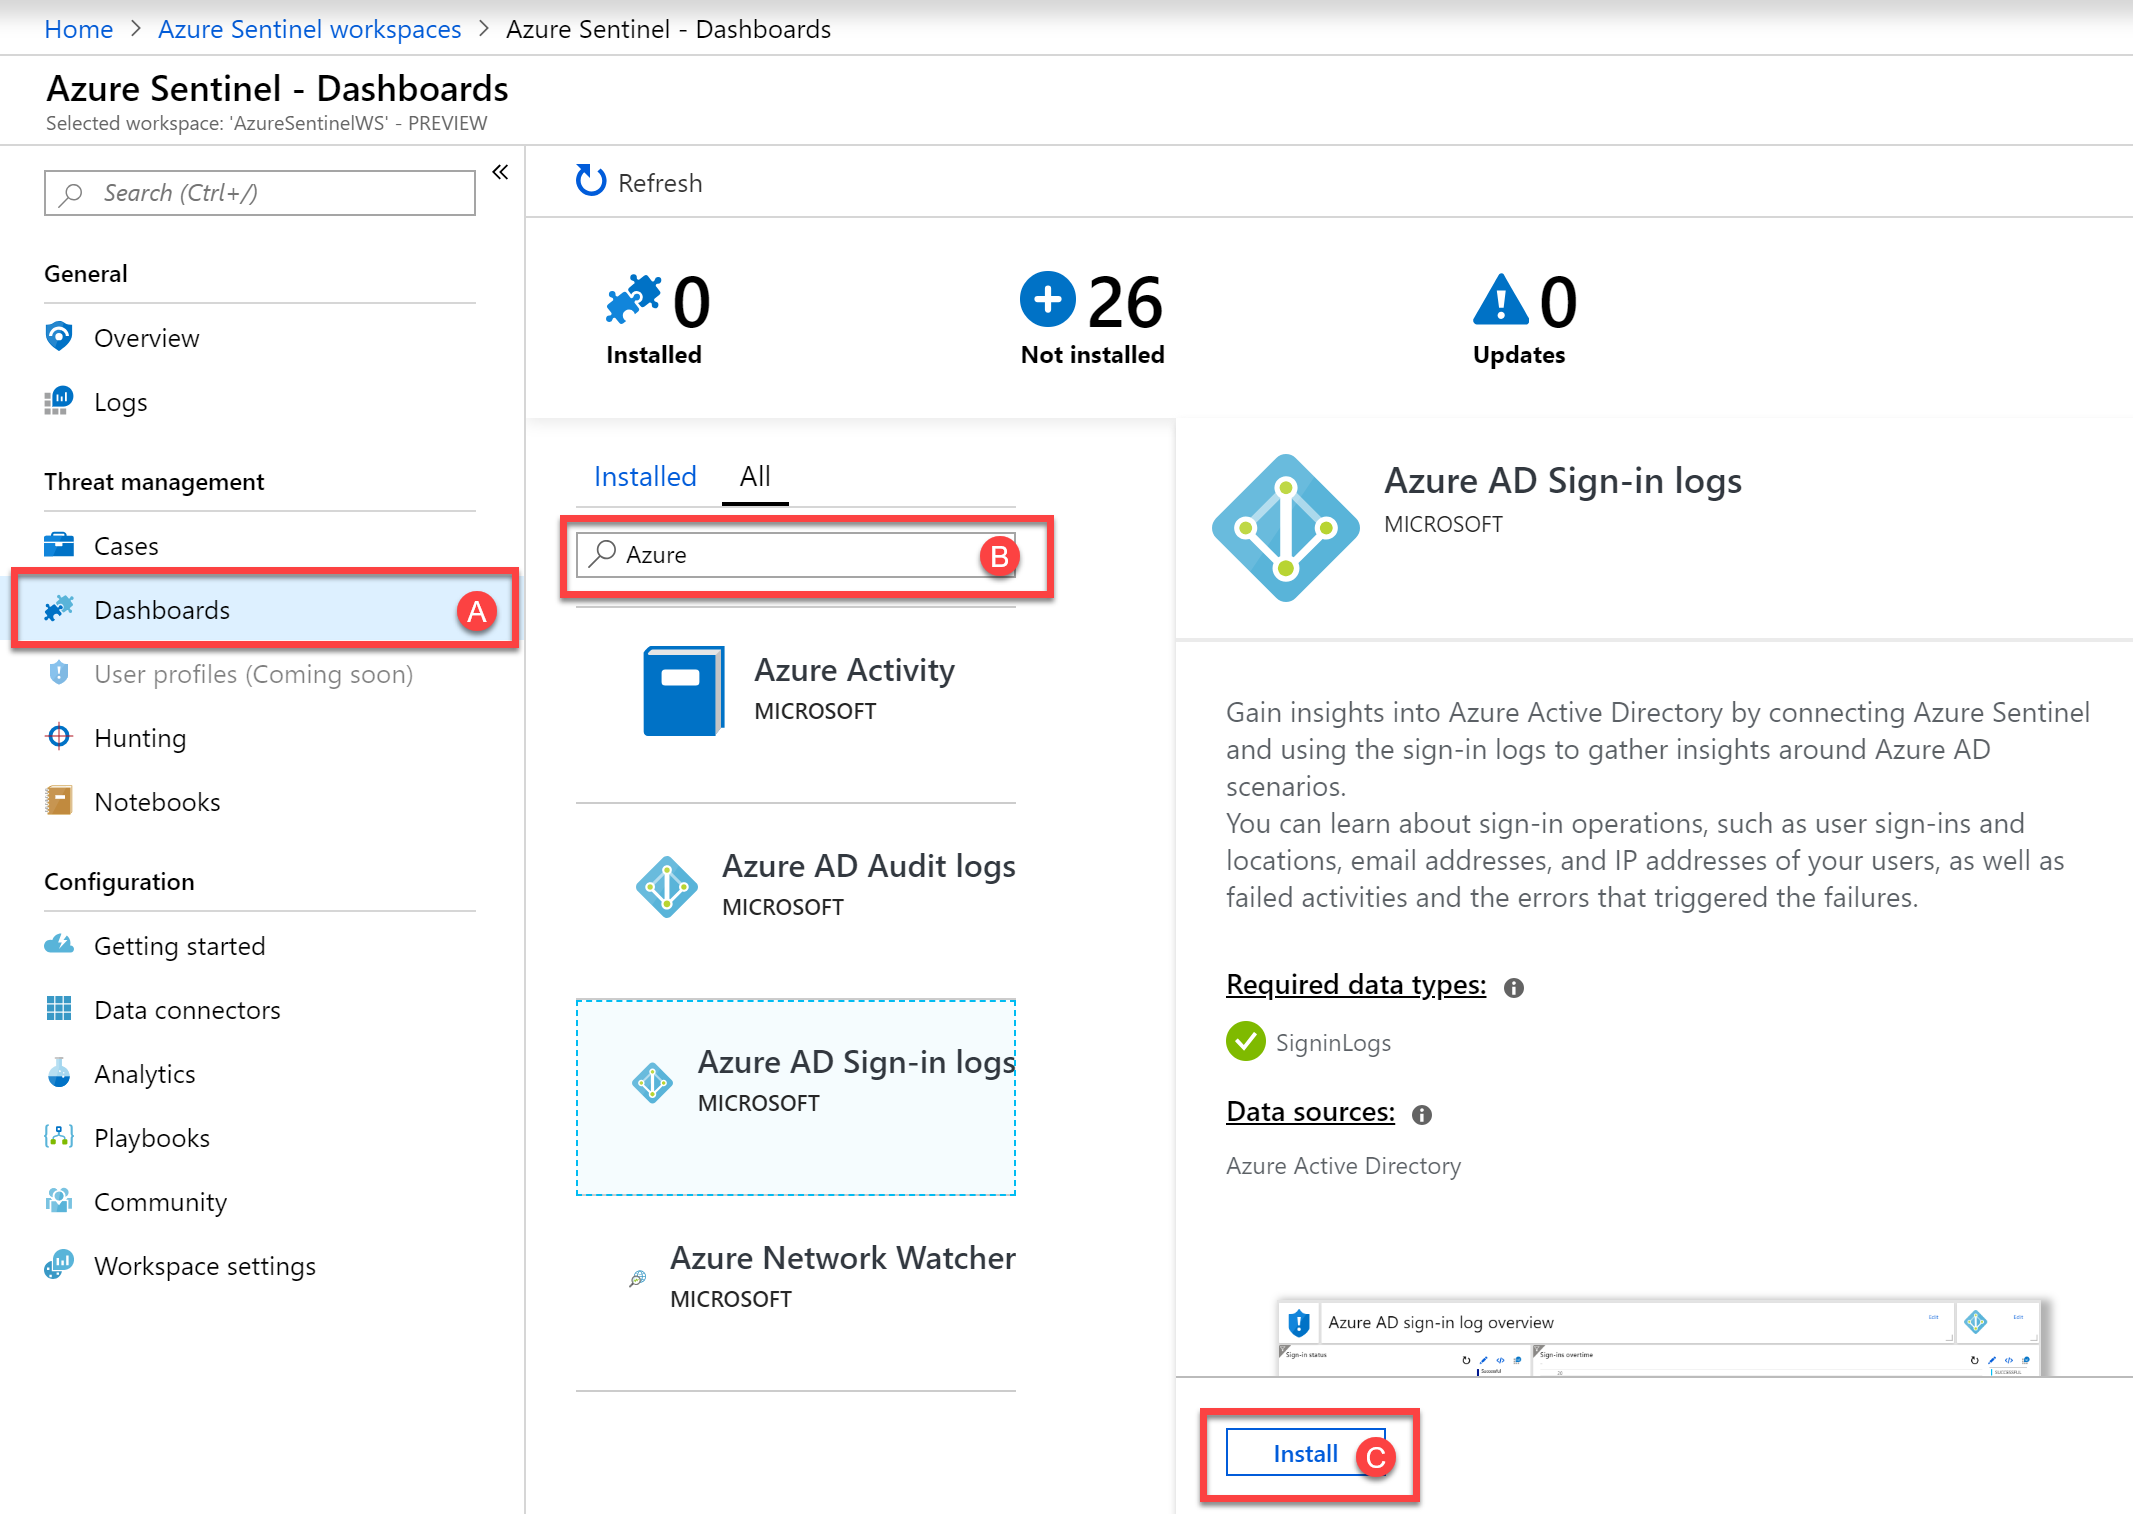 Install the relevant Azure Sentinel Dashboards